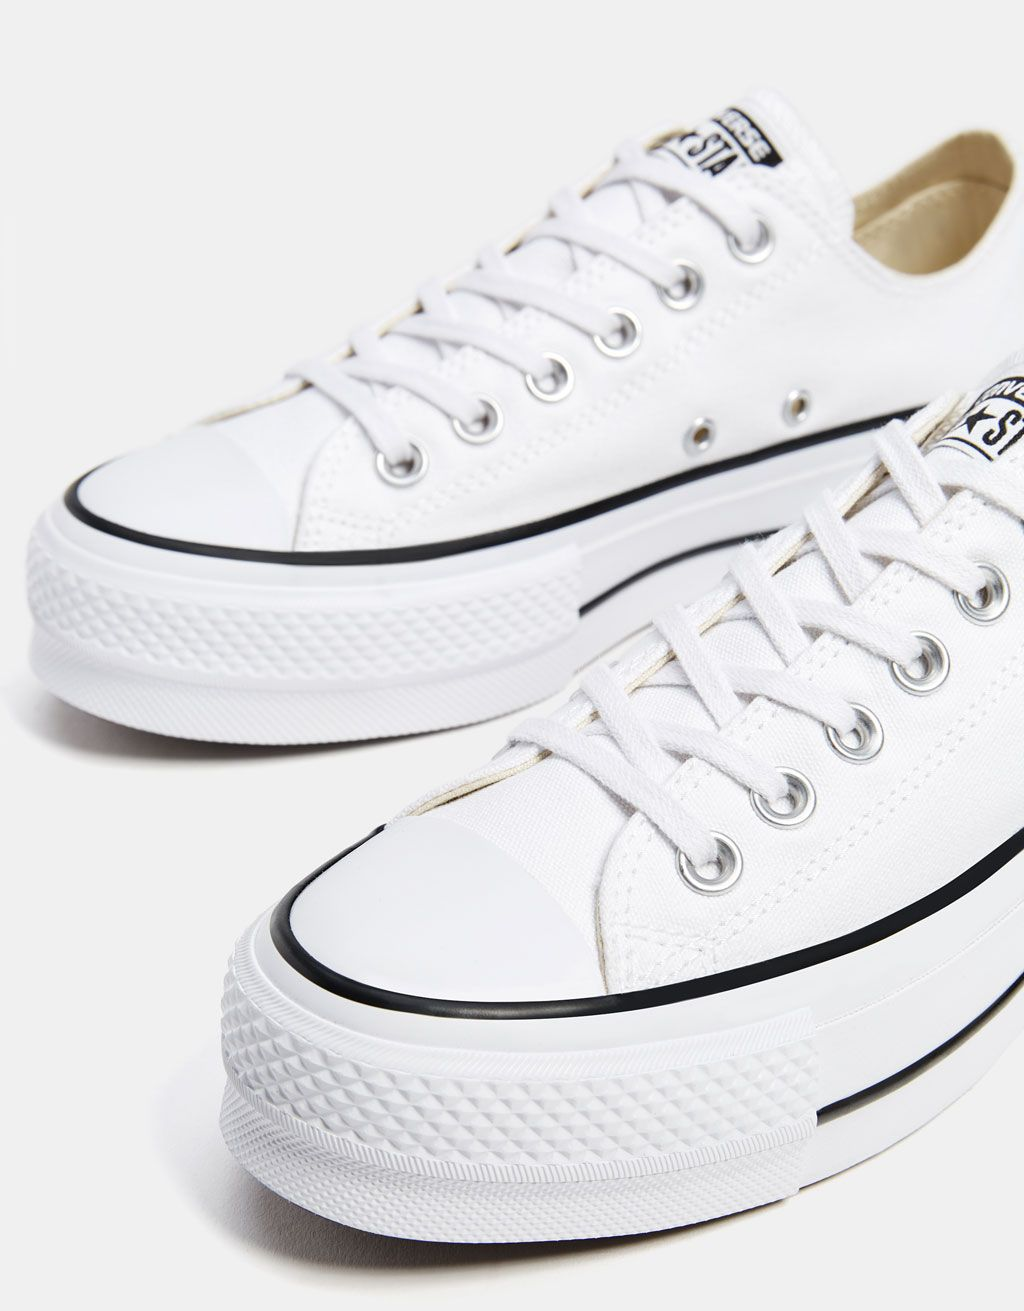 b874c05466c CONVERSE CHUCK TAYLOR ALL STAR platform sneakers - Bershka  fashion   product  converse  allstar  sneakers  trainers  white  canvas  zapatillas   lona ...